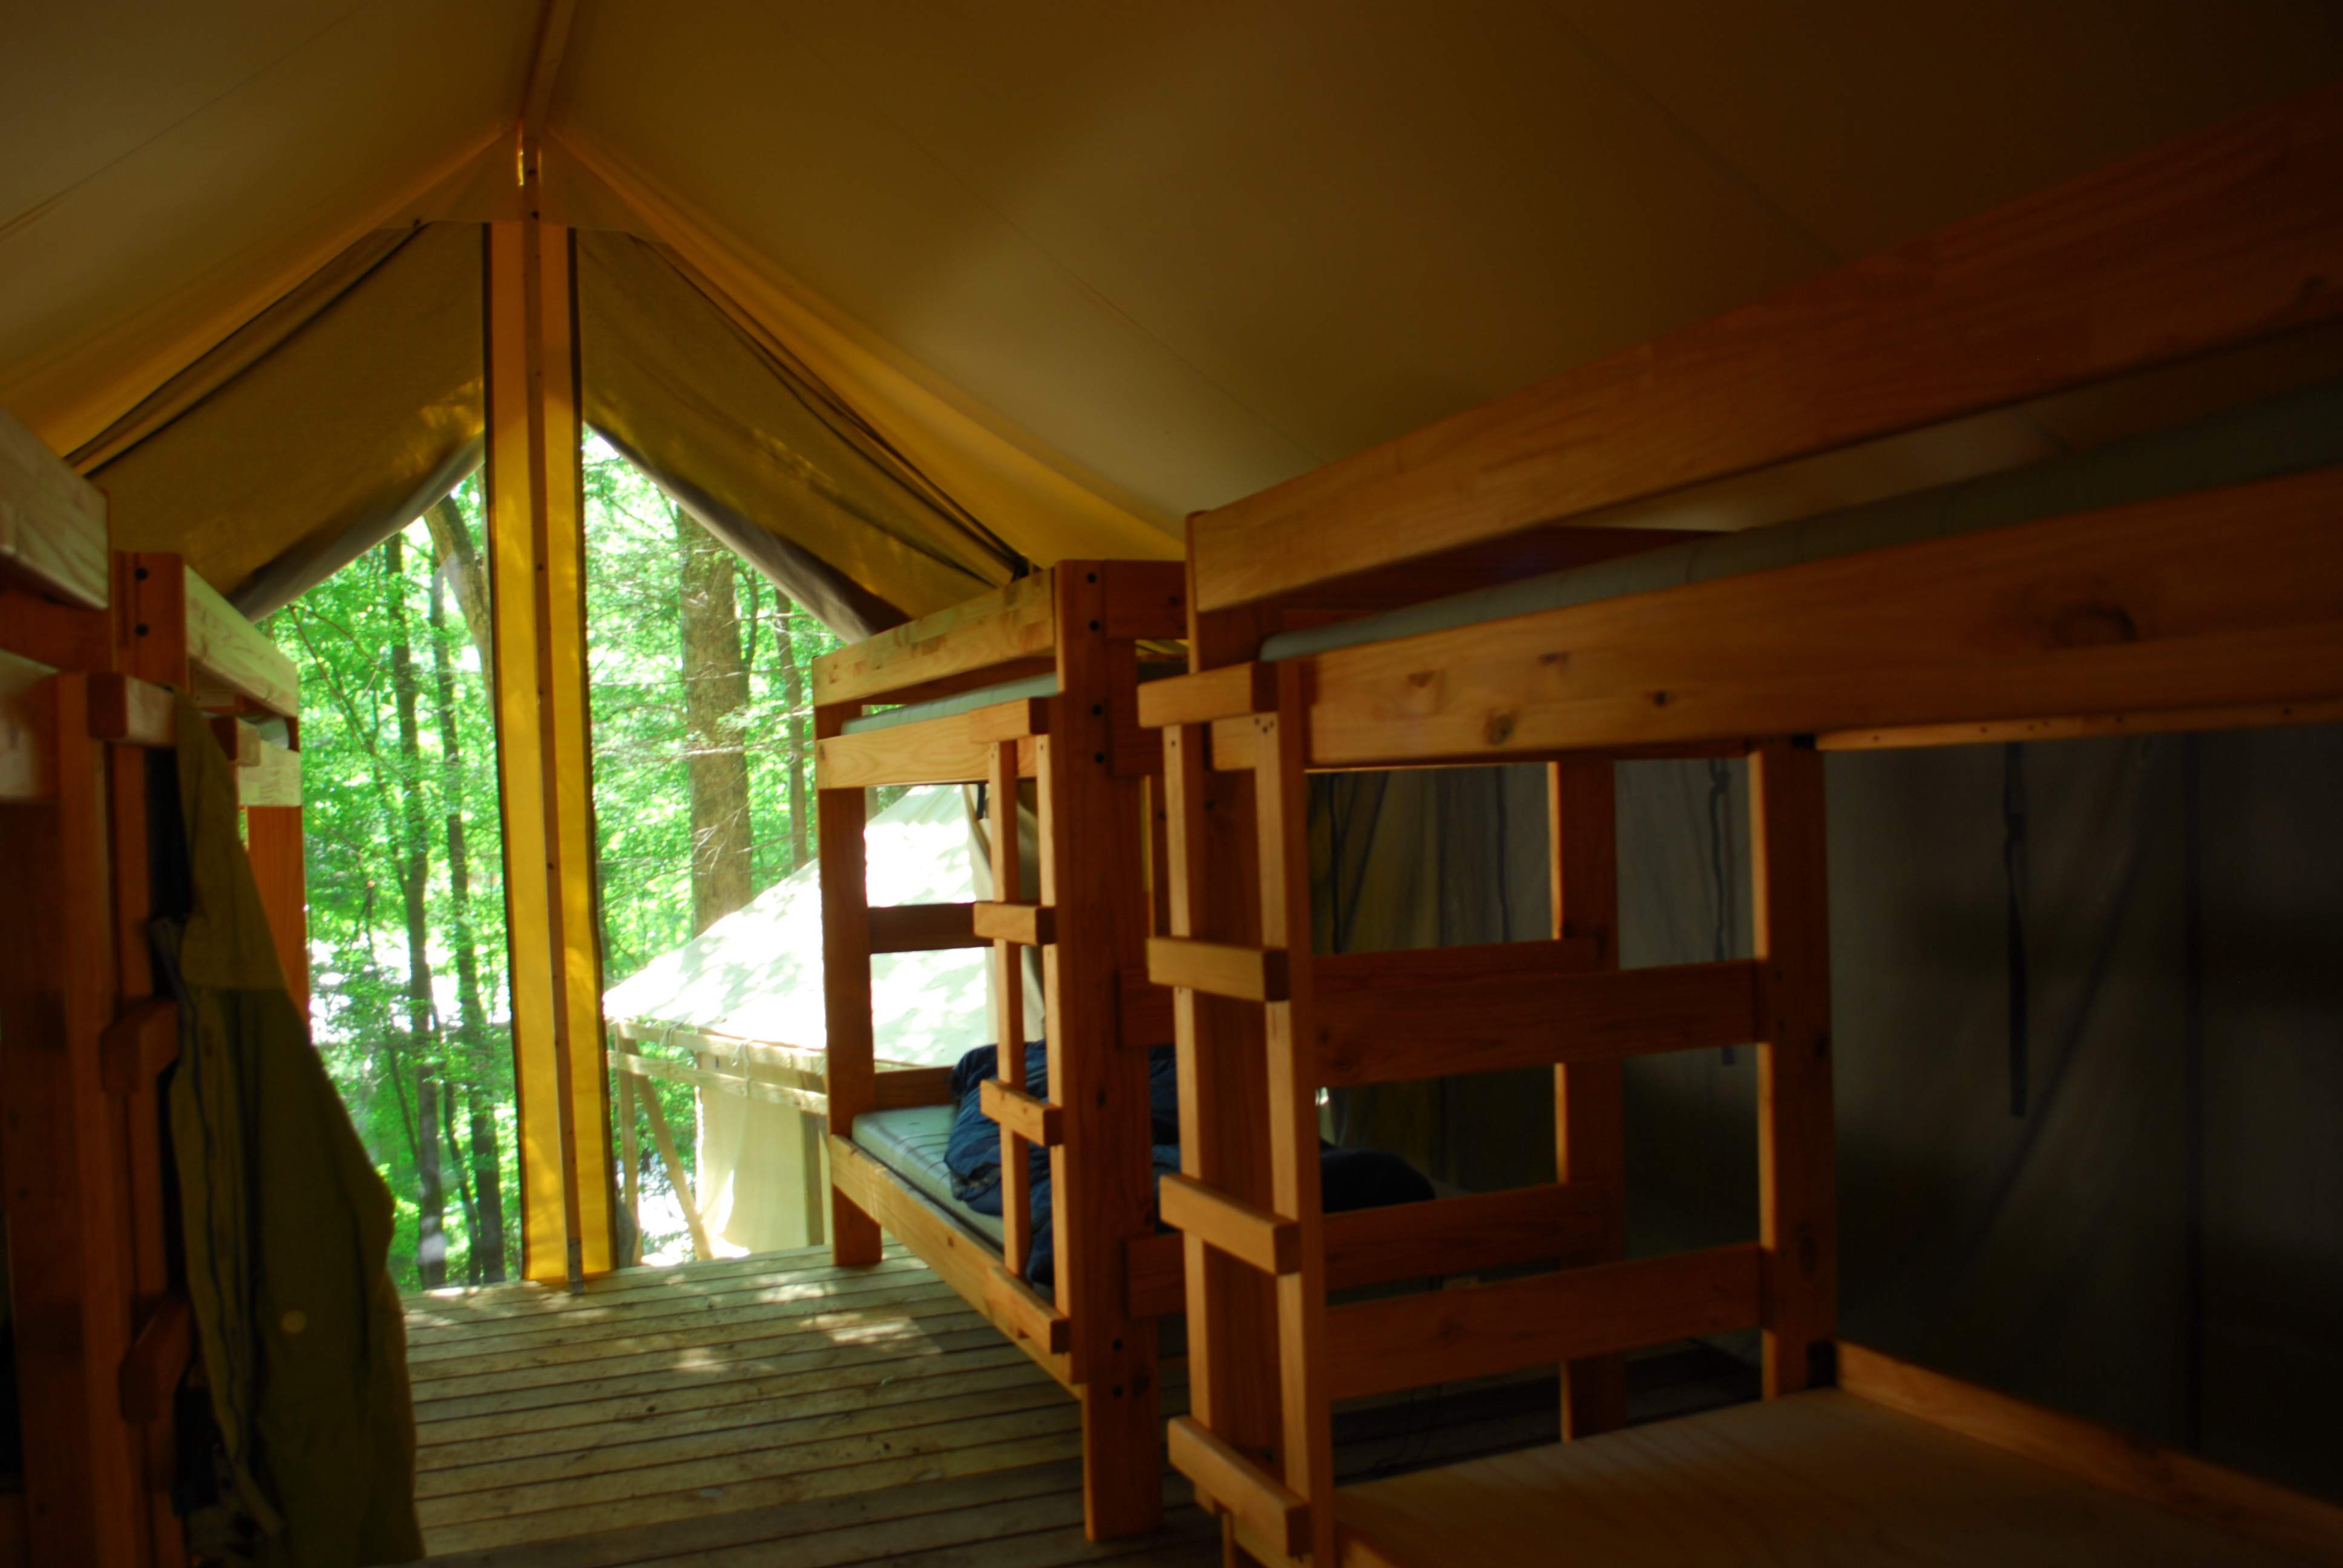 smoky like featured pin be we cabin scenic is where mountains atop mountain cabins perched the to